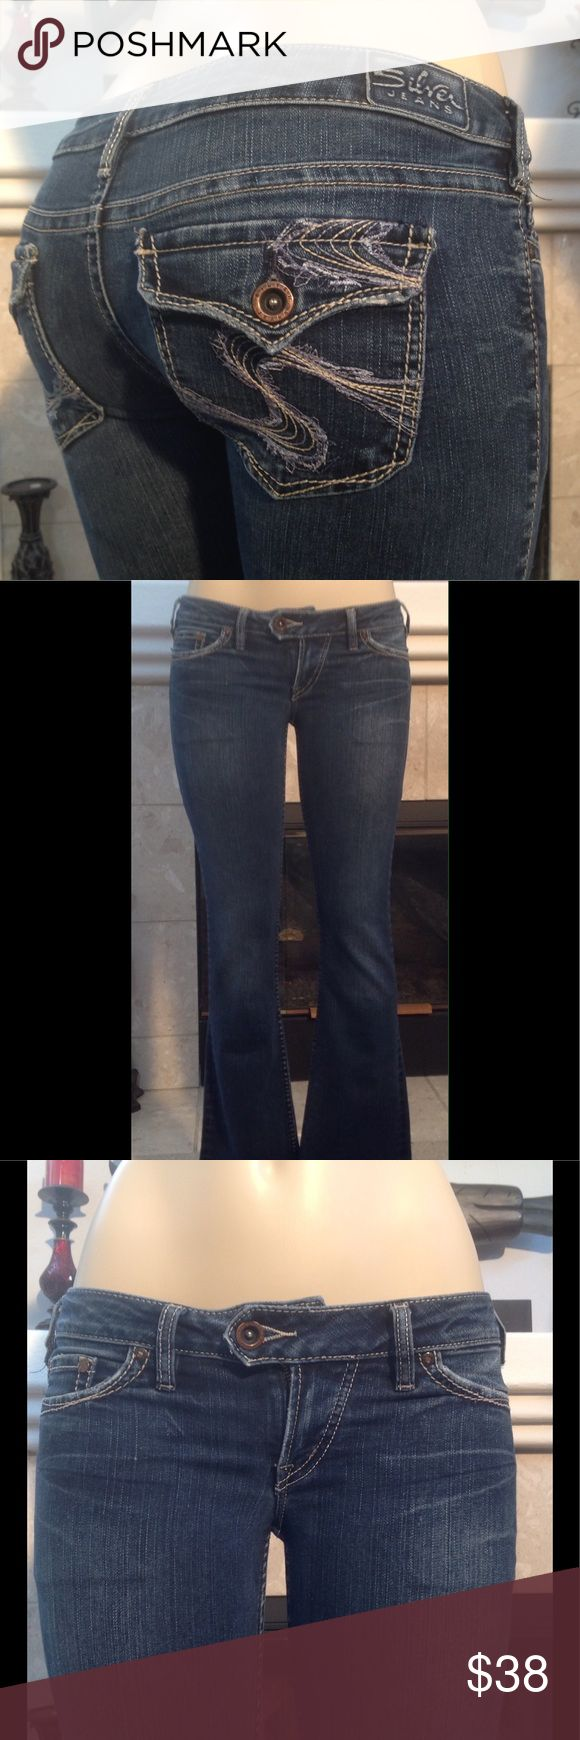 """SILVER WOMEN'S JEANS """"TUESDAY FLAP"""" SZ 28  (430) EMBELLISHED POCKETS BOOT CUT SIZE 28 INSEAM 30"""" RISE 7"""" WAIST 15.5"""" THESE JEANS ARE IN GREAT USED CONDITION COMES FROM A SMOKE FREE HOME (430) Silver Jeans Jeans Boot Cut"""